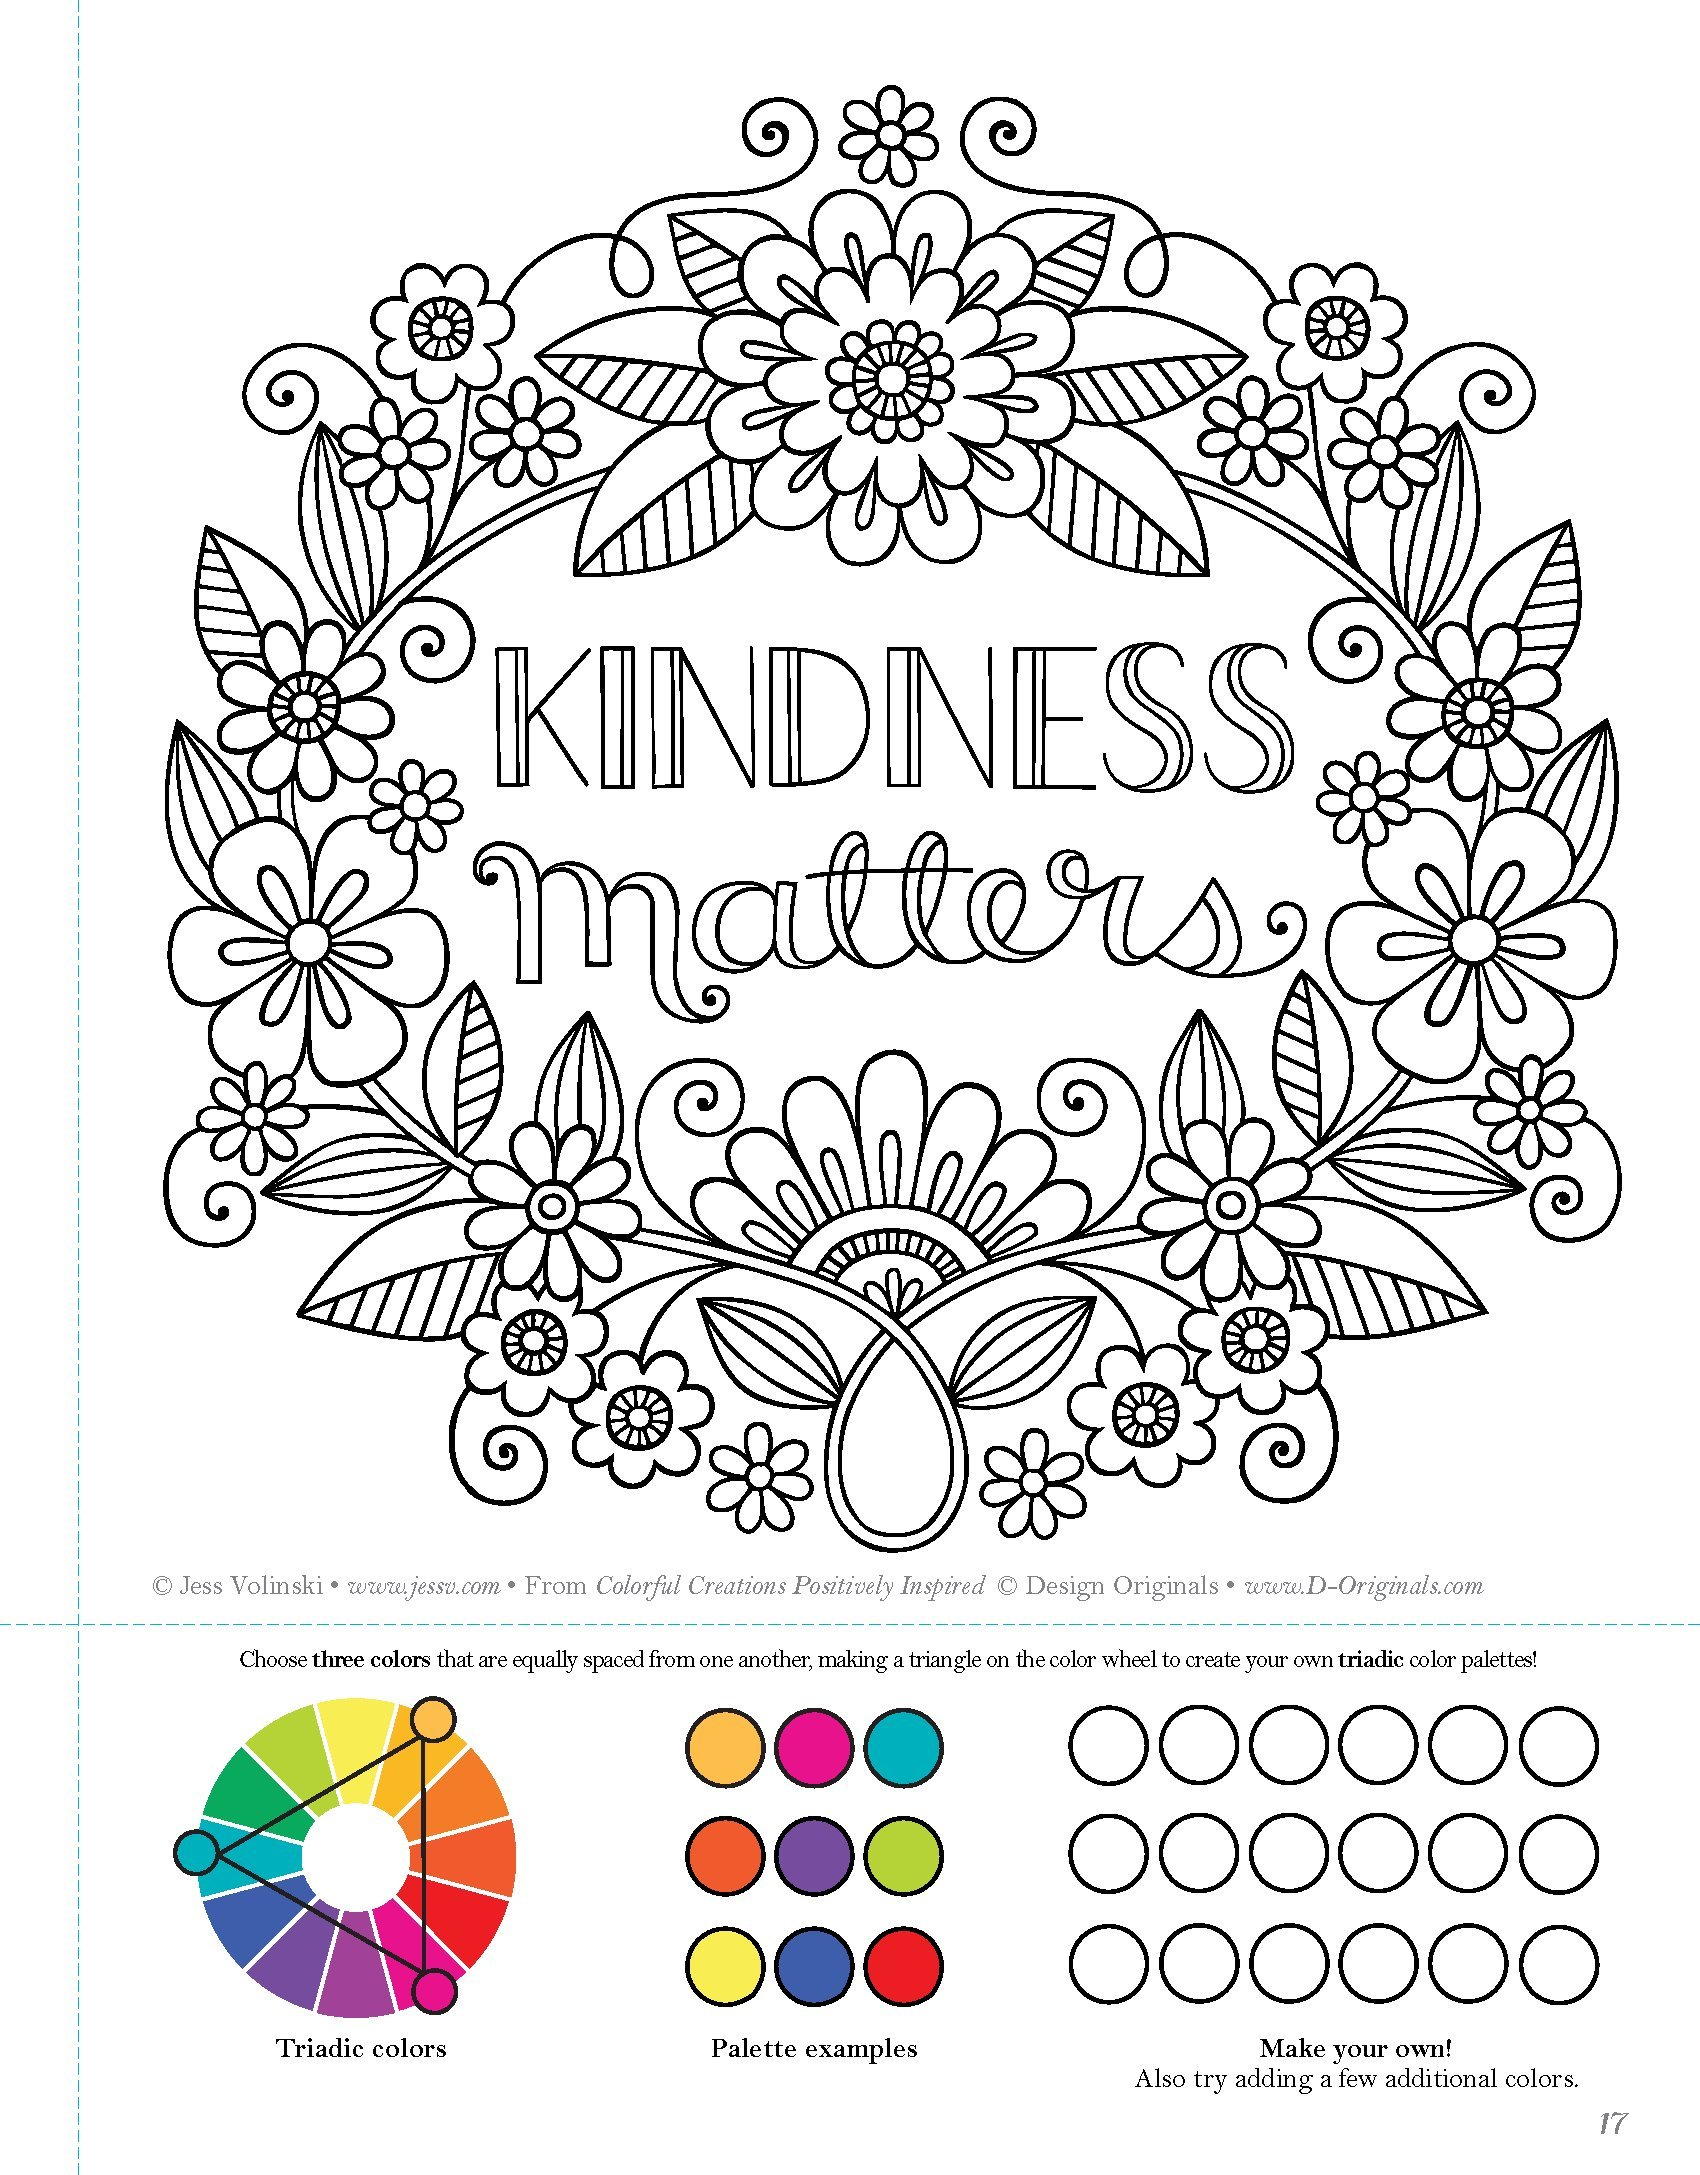 Amazon.com: Colorful Creations Positively Inspired Coloring Book ...